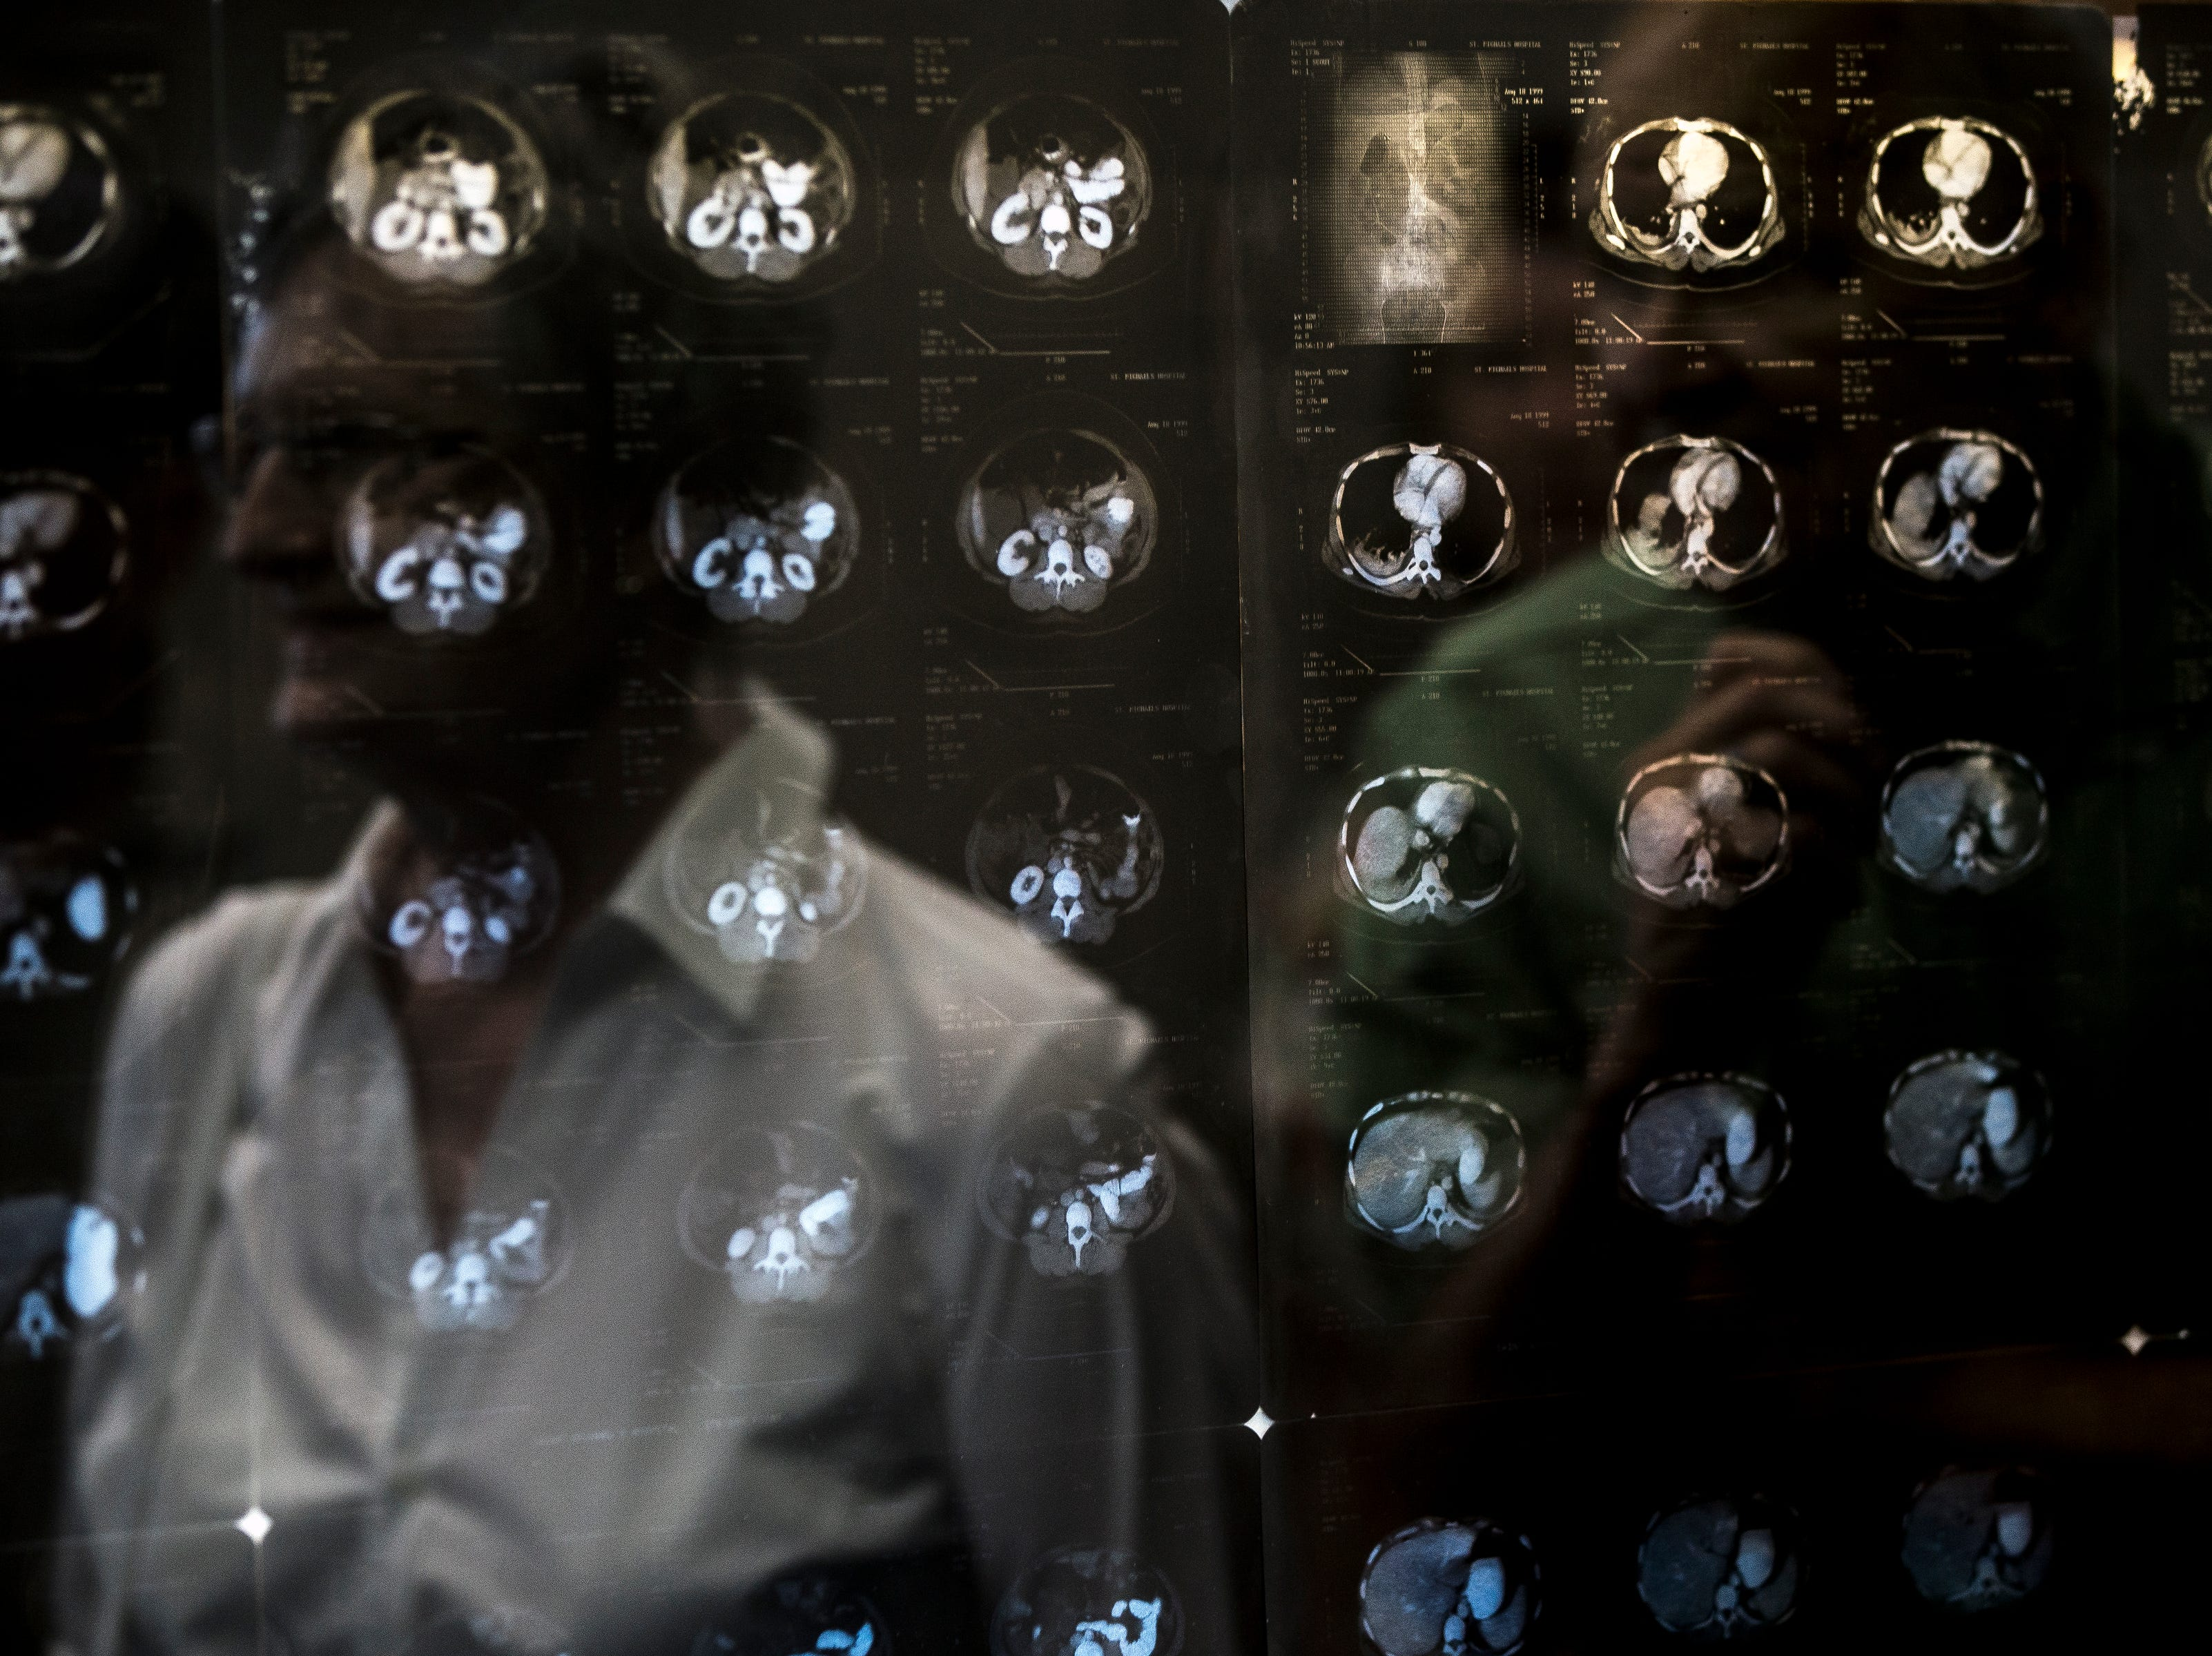 Scans of brains are displayed in the hallway of the Chemistry Biology Building at the University of Wisconsin-Stevens Point in Stevens Point, Wis., Sept. 14, 2018.